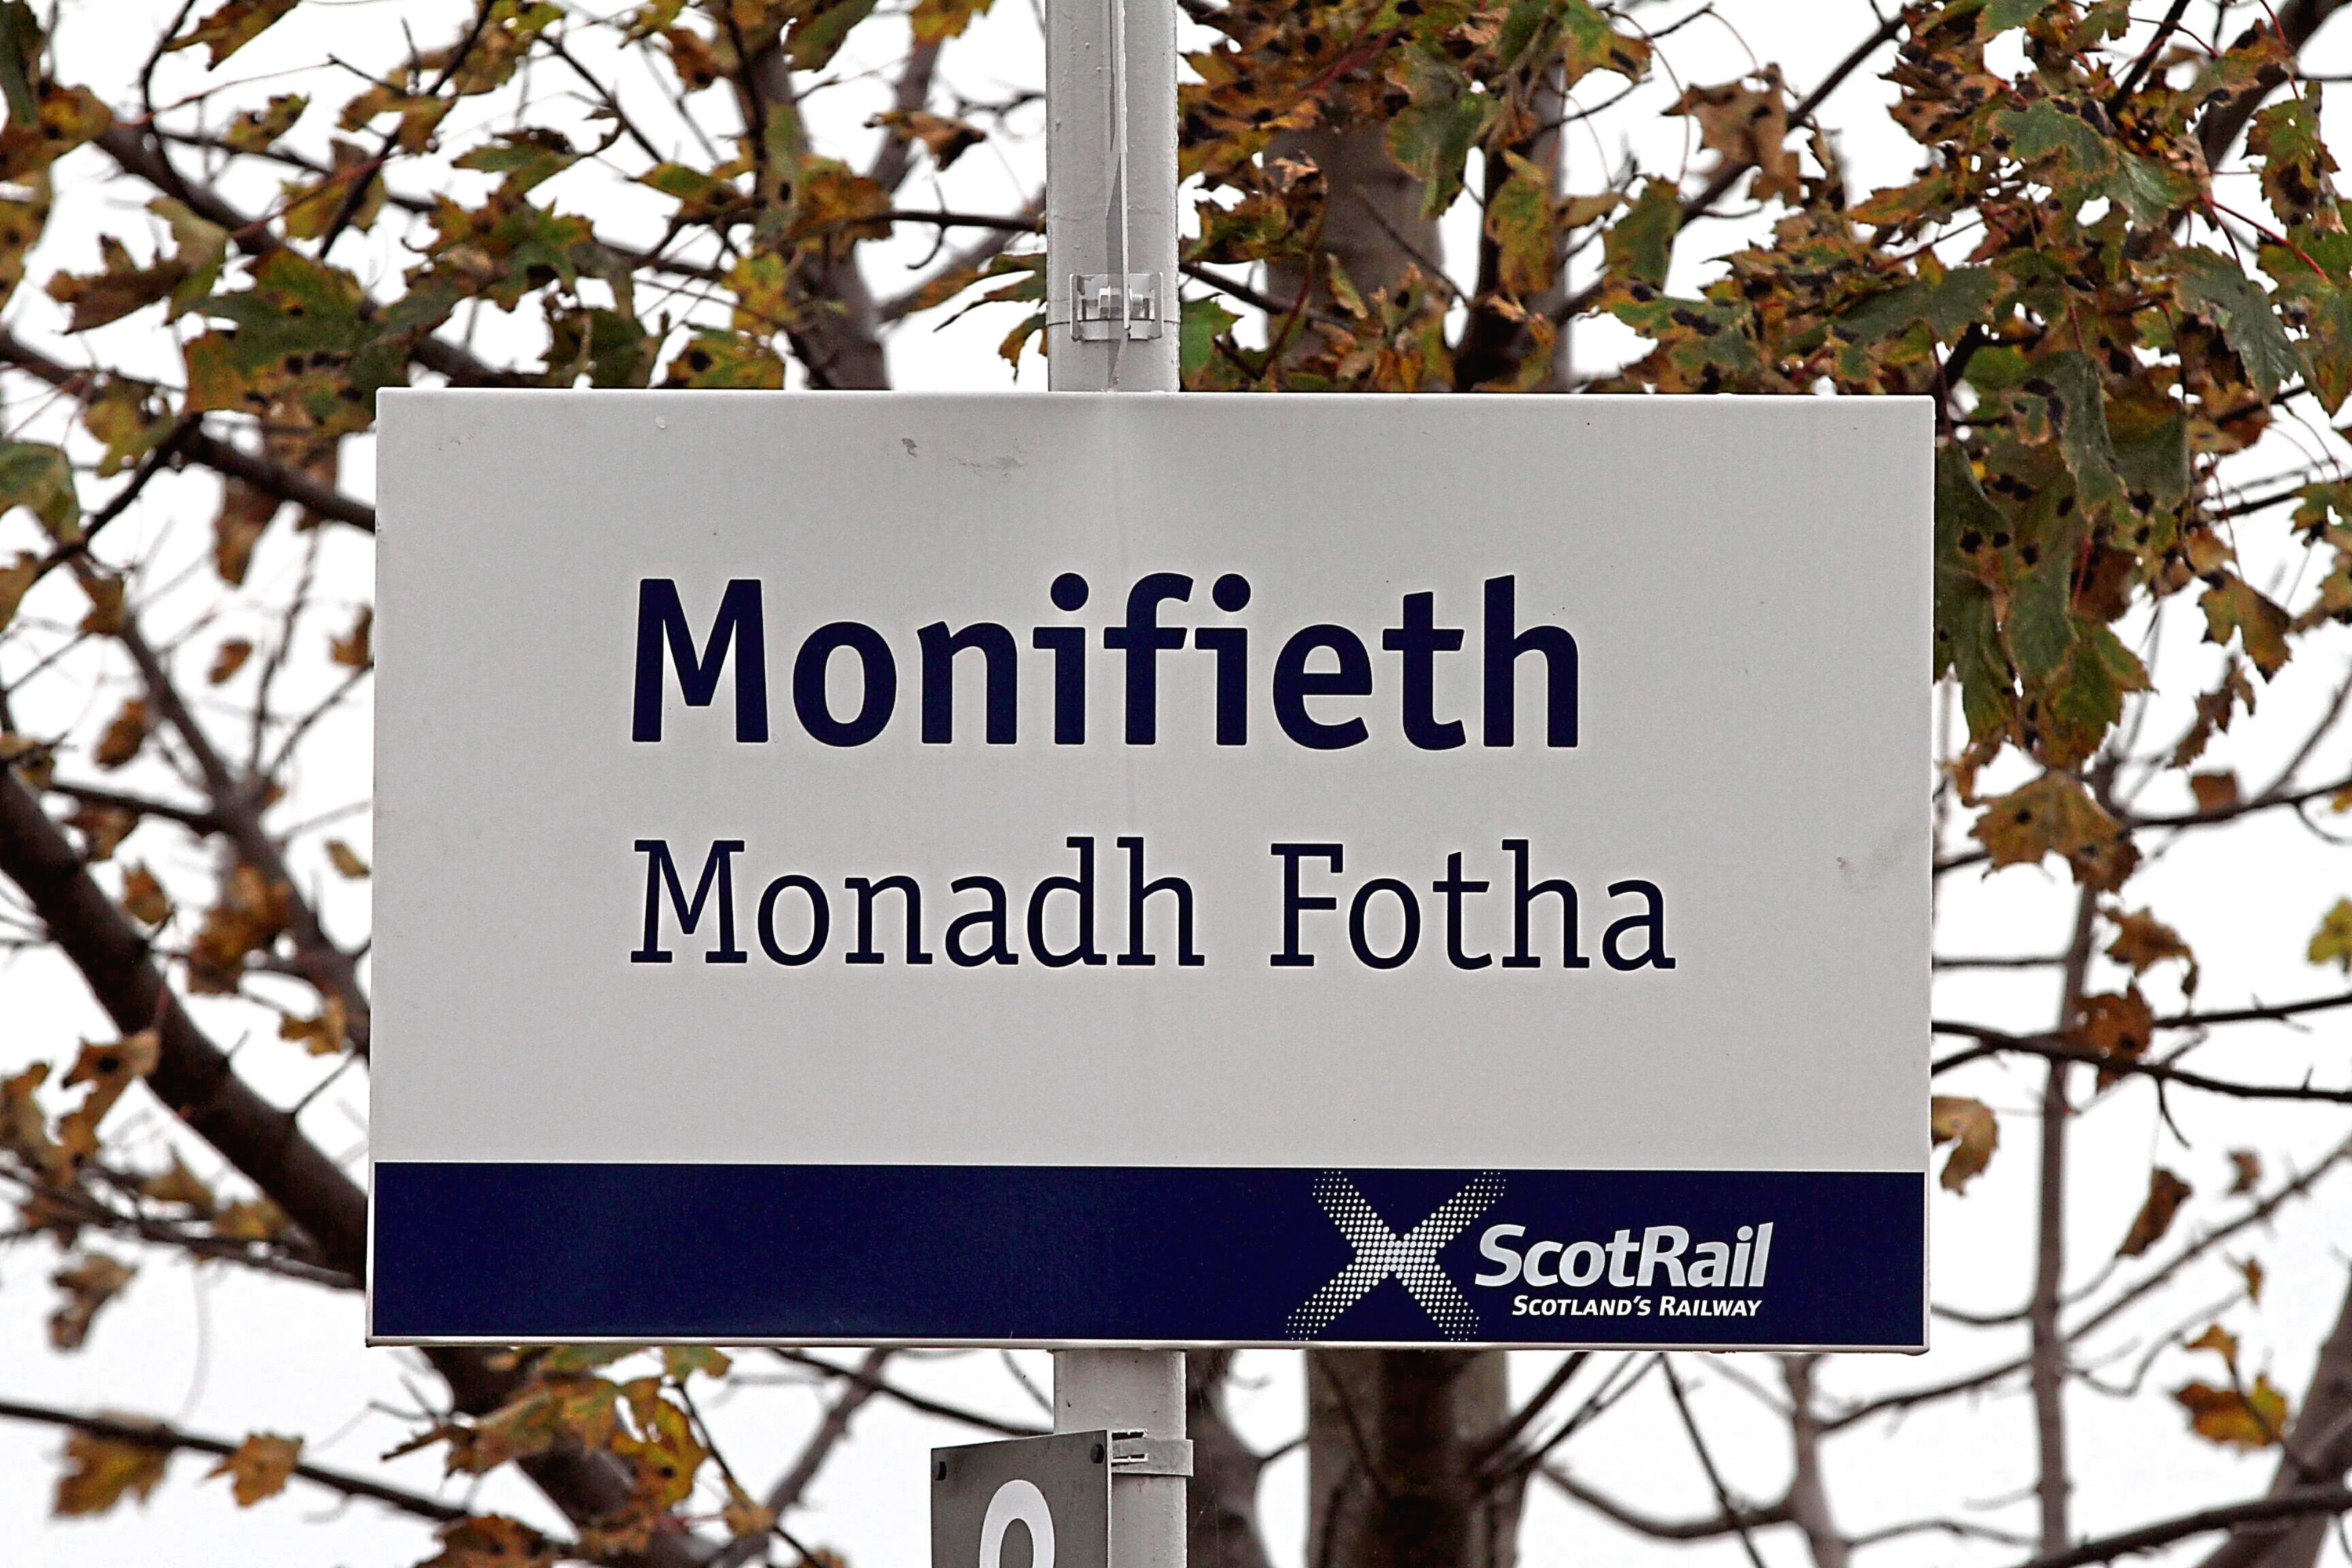 How can Gaelic be saved as a living language?